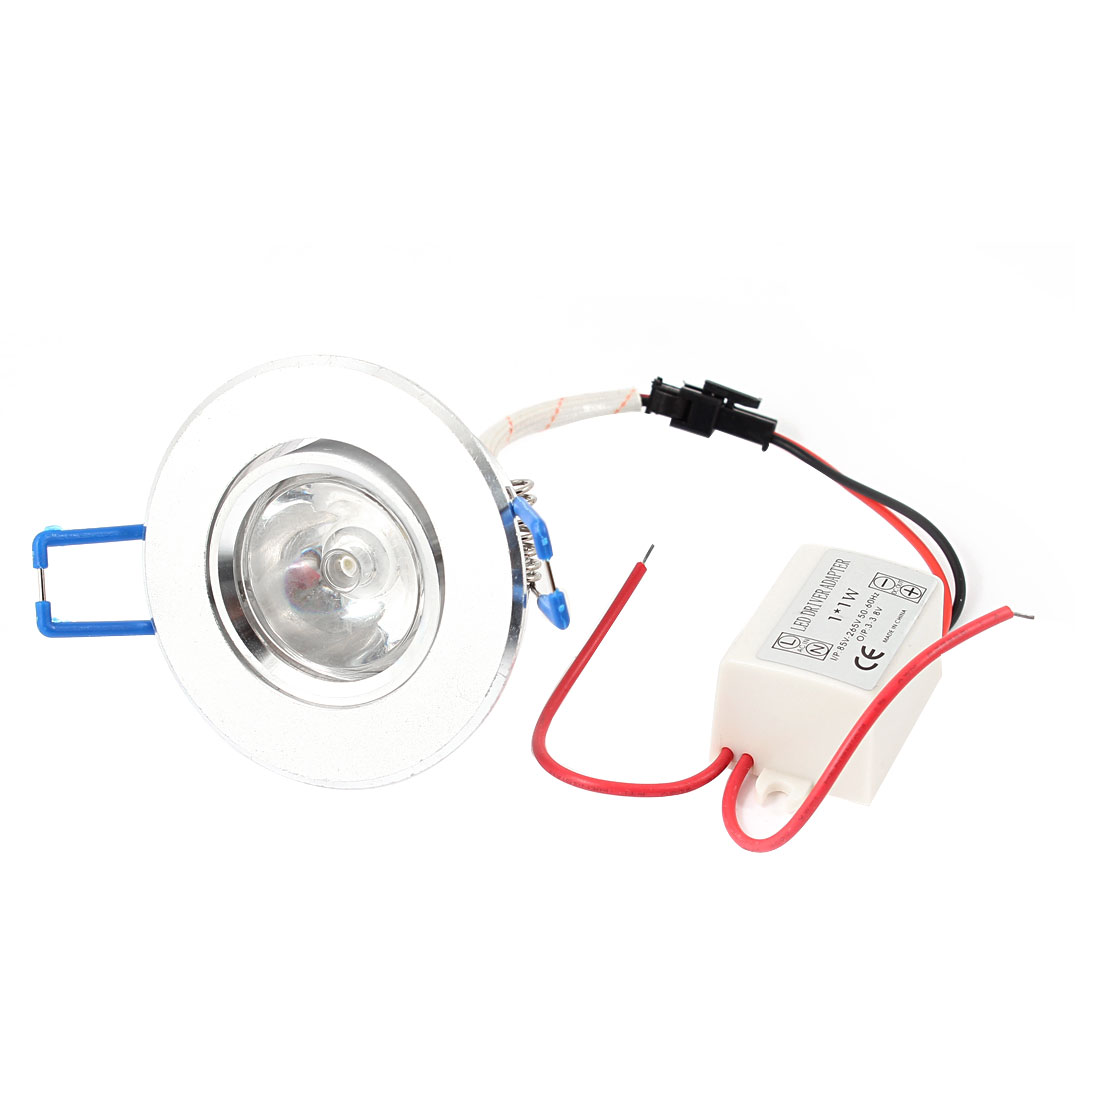 AC85V-265V 1W Warm White Ceiling Downlight Recessed Spot Lamp Bulb + LED Driver